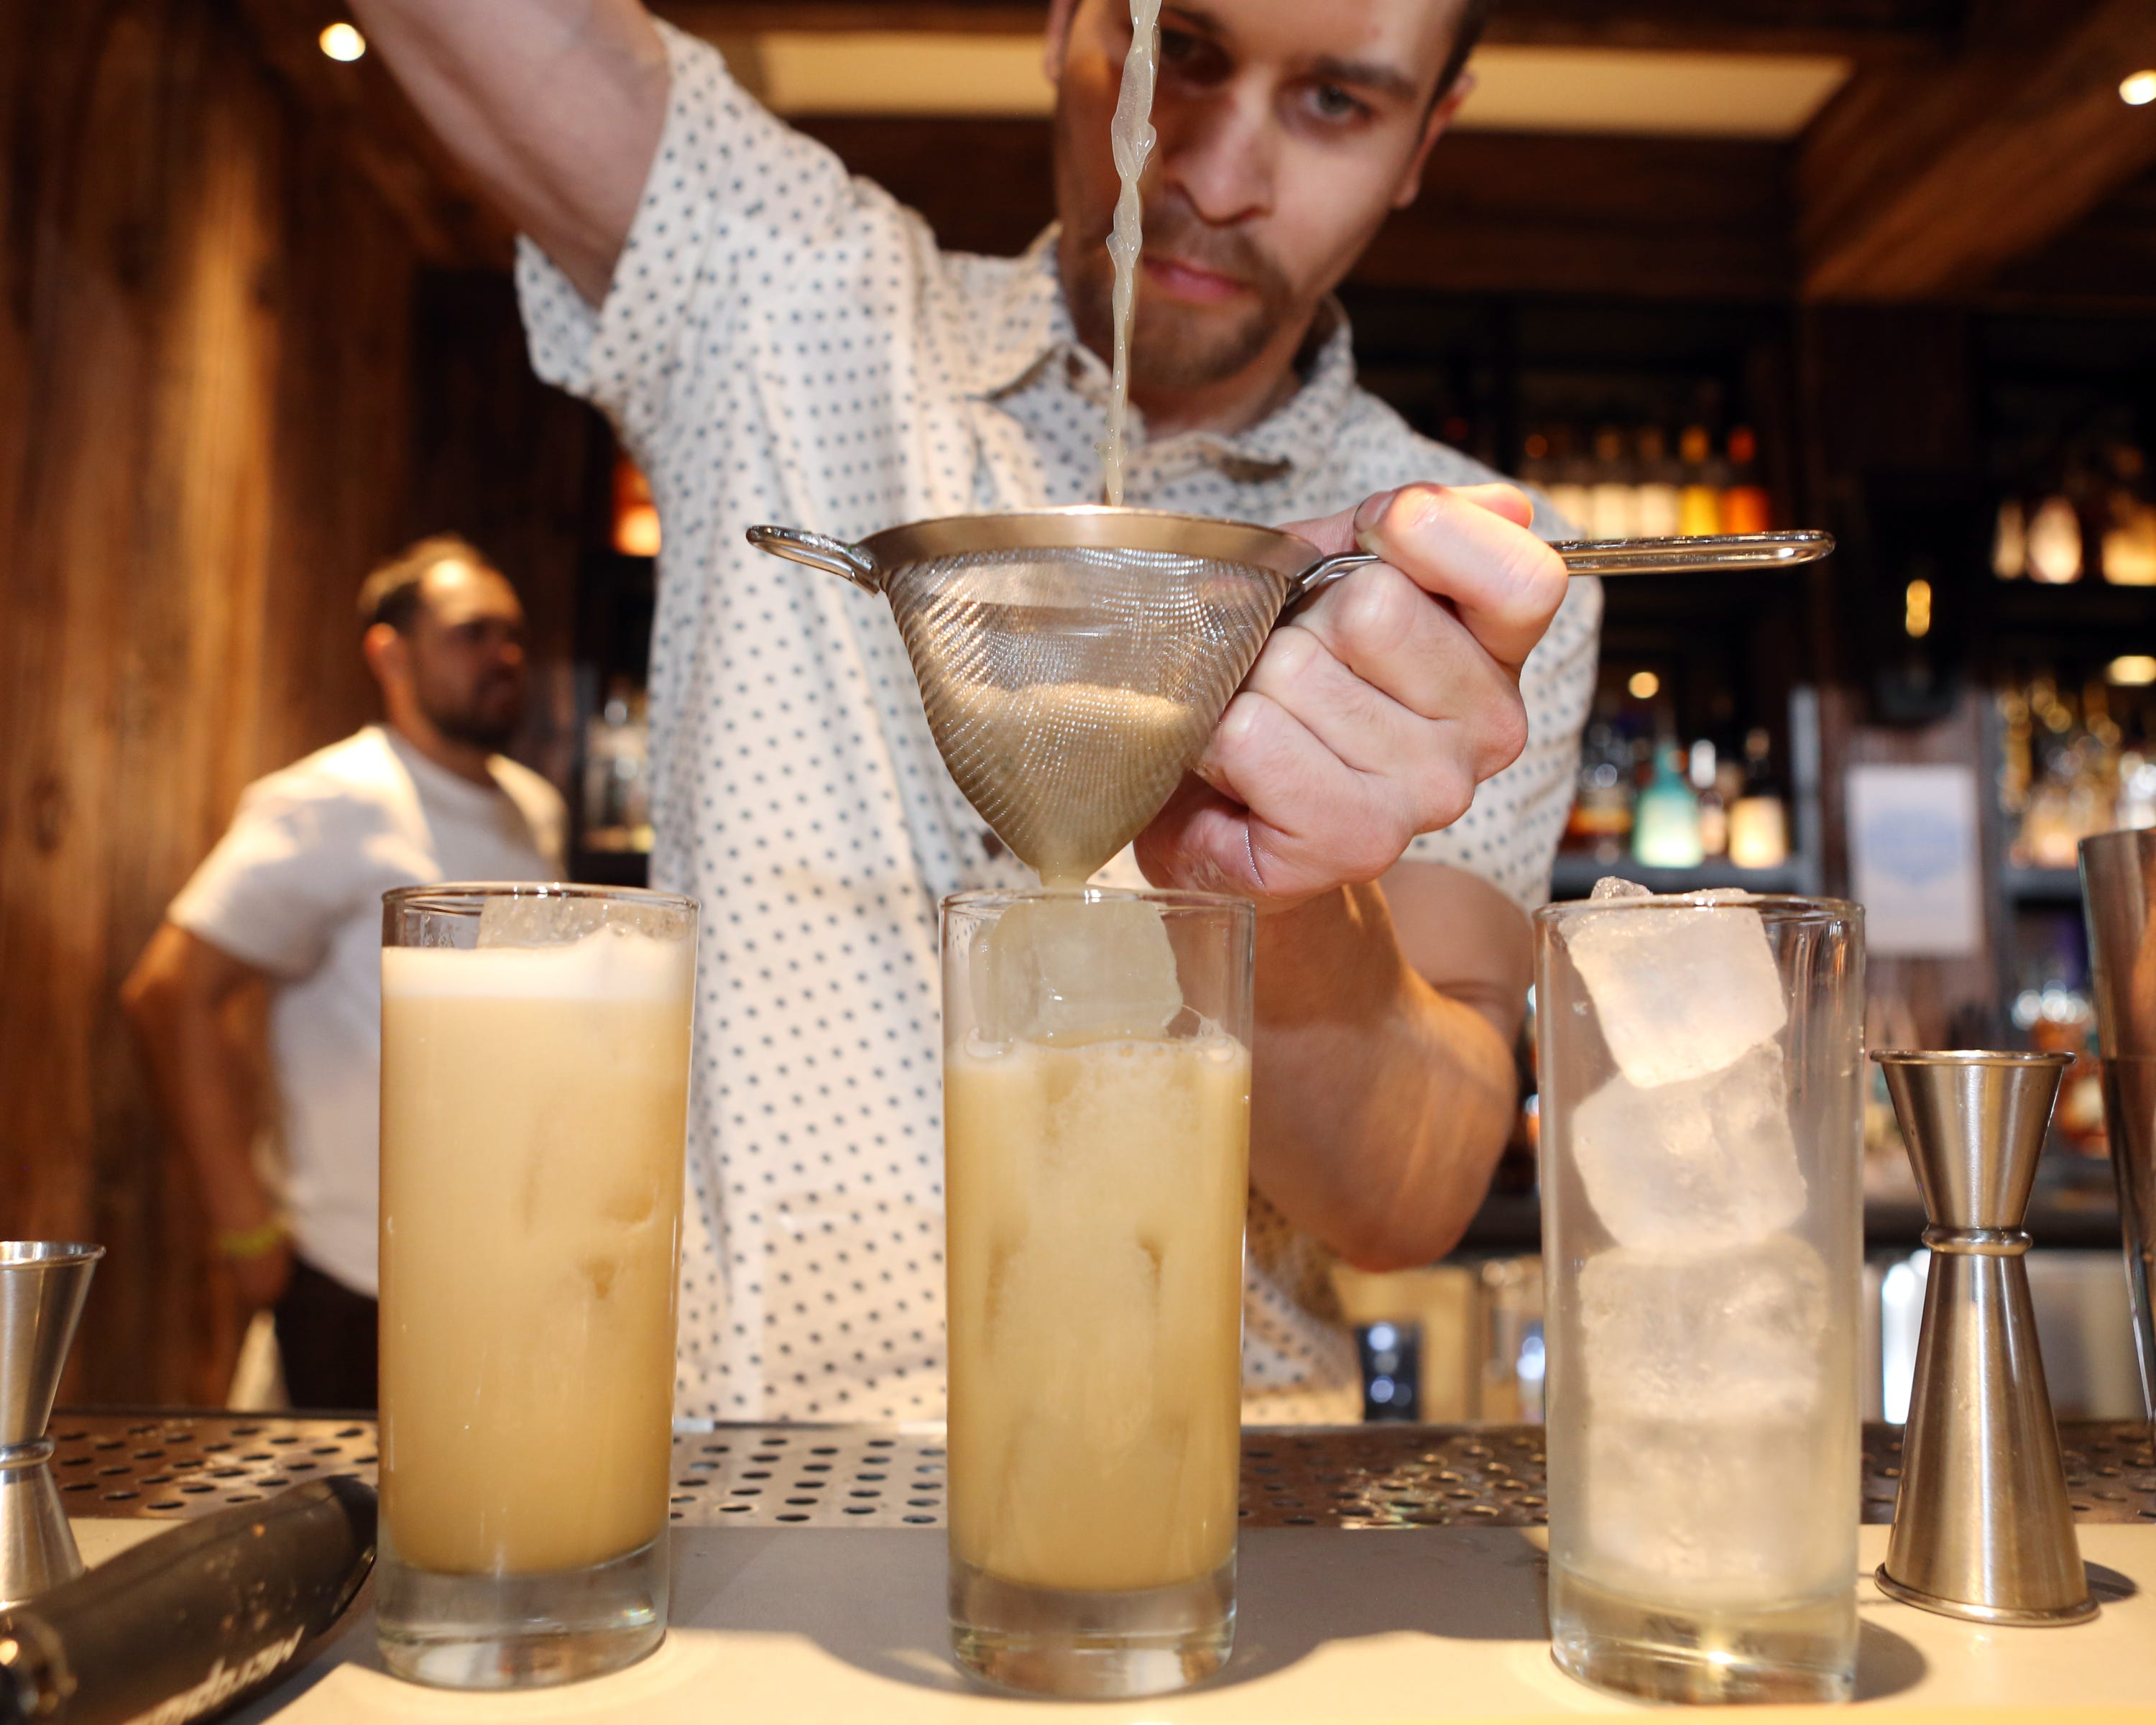 Arizona Cocktail Weekend events will showcase Phoenix's best bars